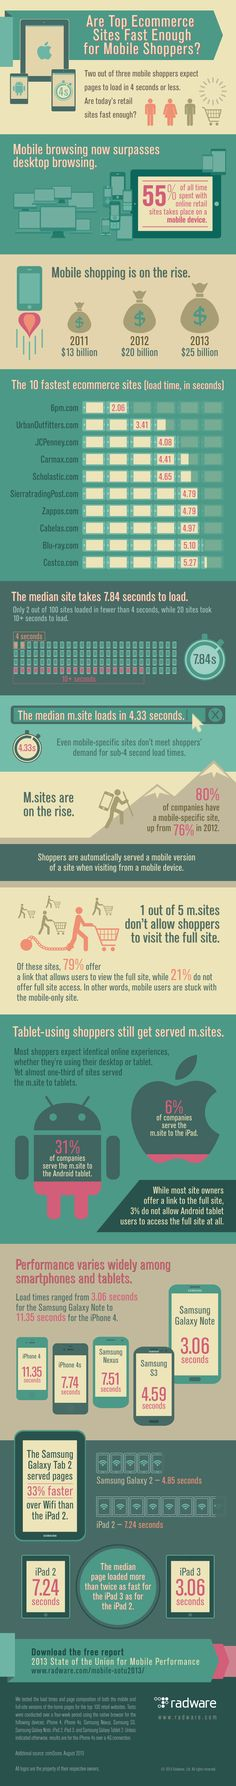 #Infographic: Are e-commerce sites fast enough for #mobile shoppers? via @eTail